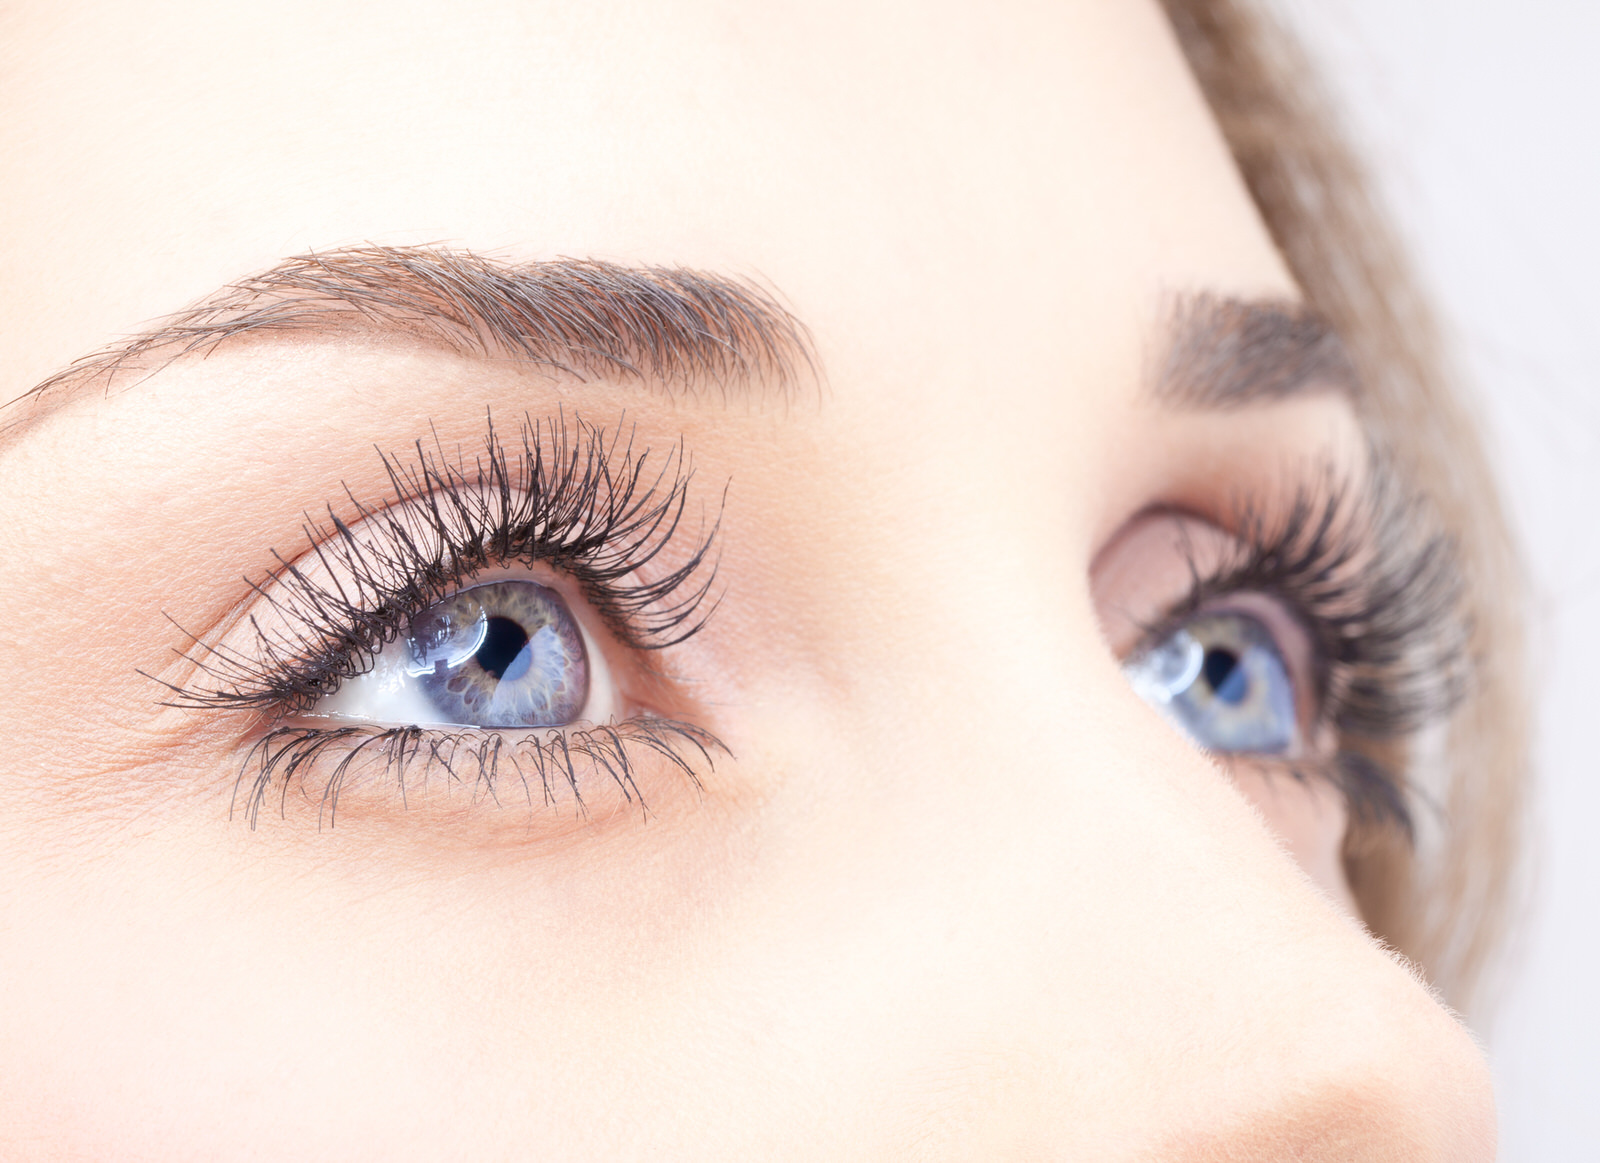 A close up of a woman's eyes and eyebrows